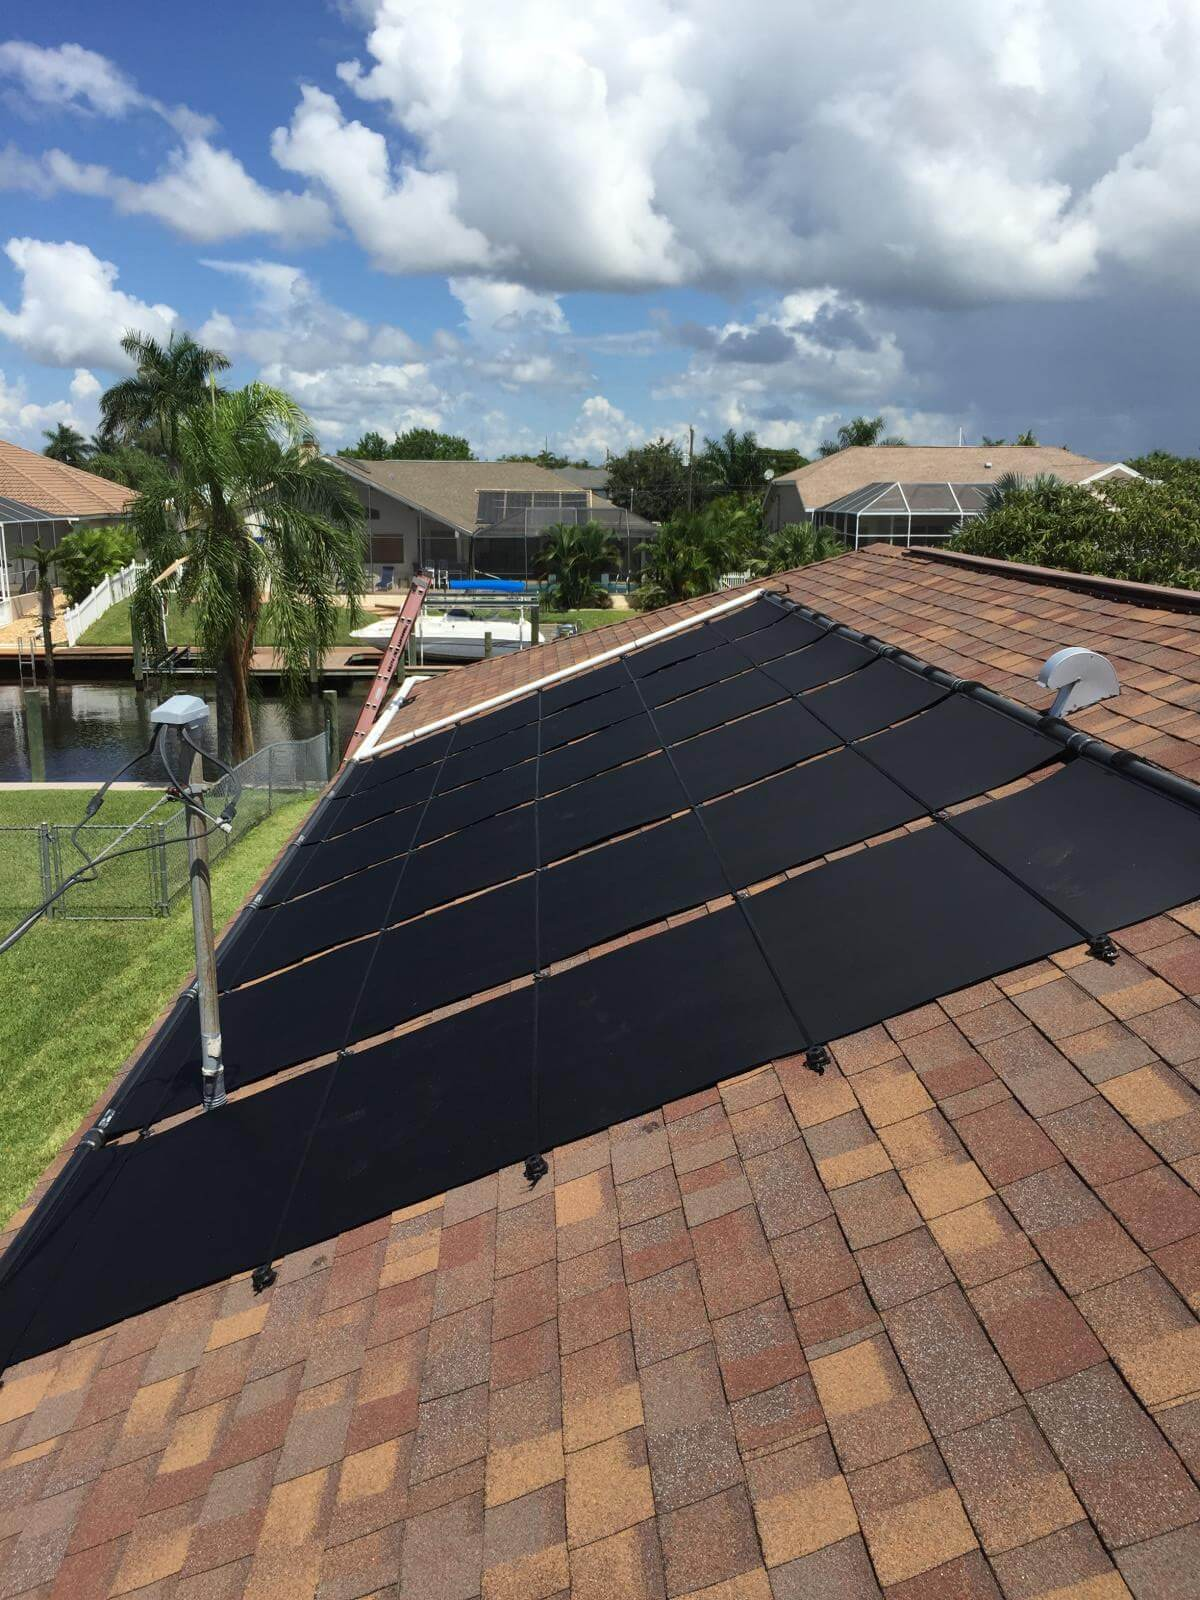 How Many Solar Panels Are Needed To Heat A Swimming Pool